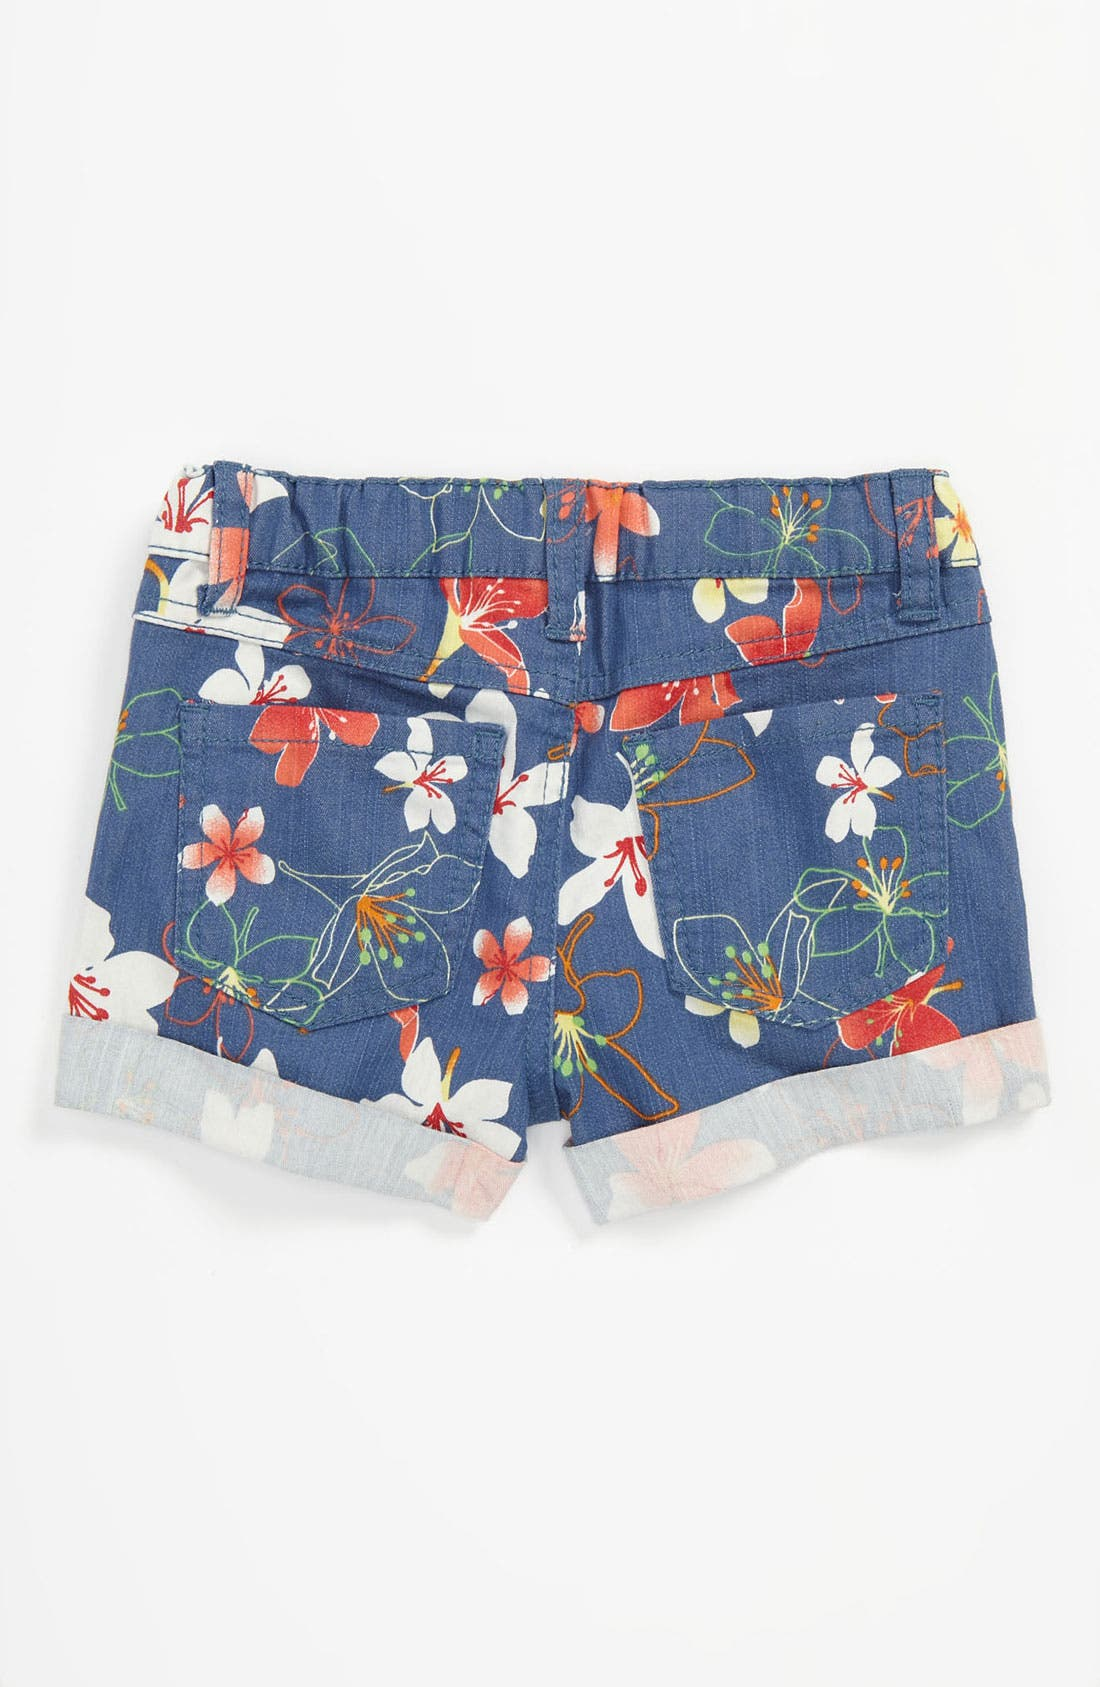 Alternate Image 1 Selected - Pumpkin Patch Floral Print Shorts (Baby)